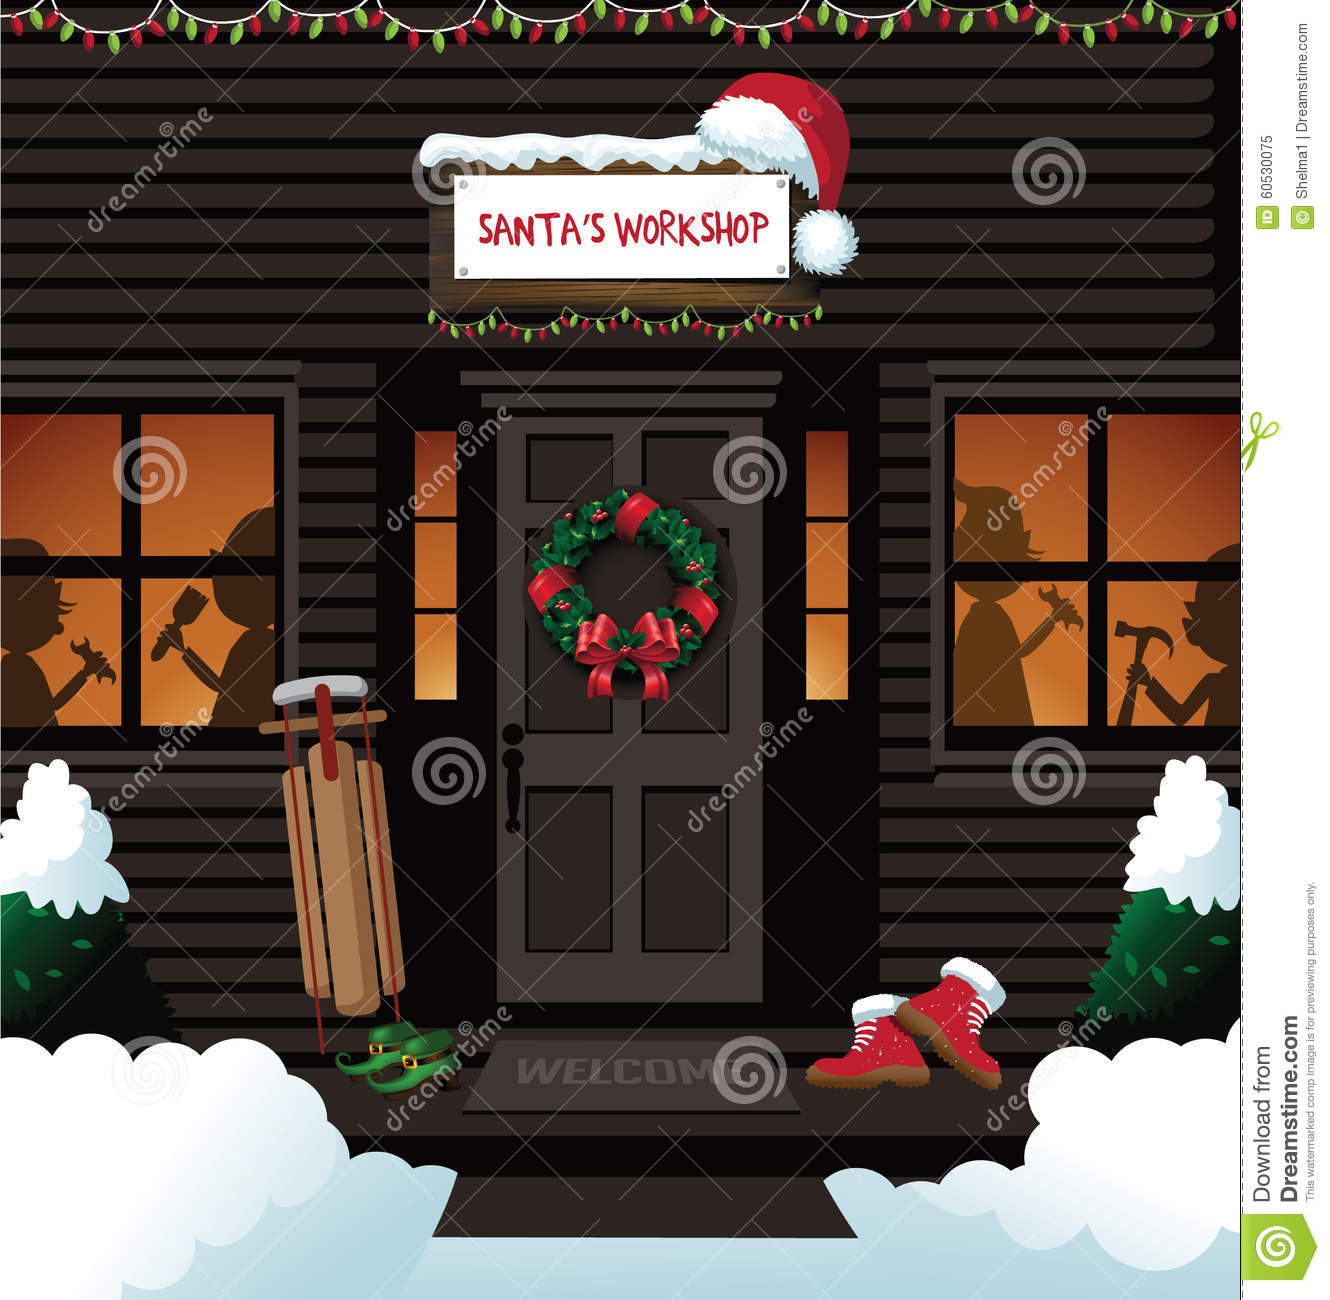 Santa s workshop at the north pole